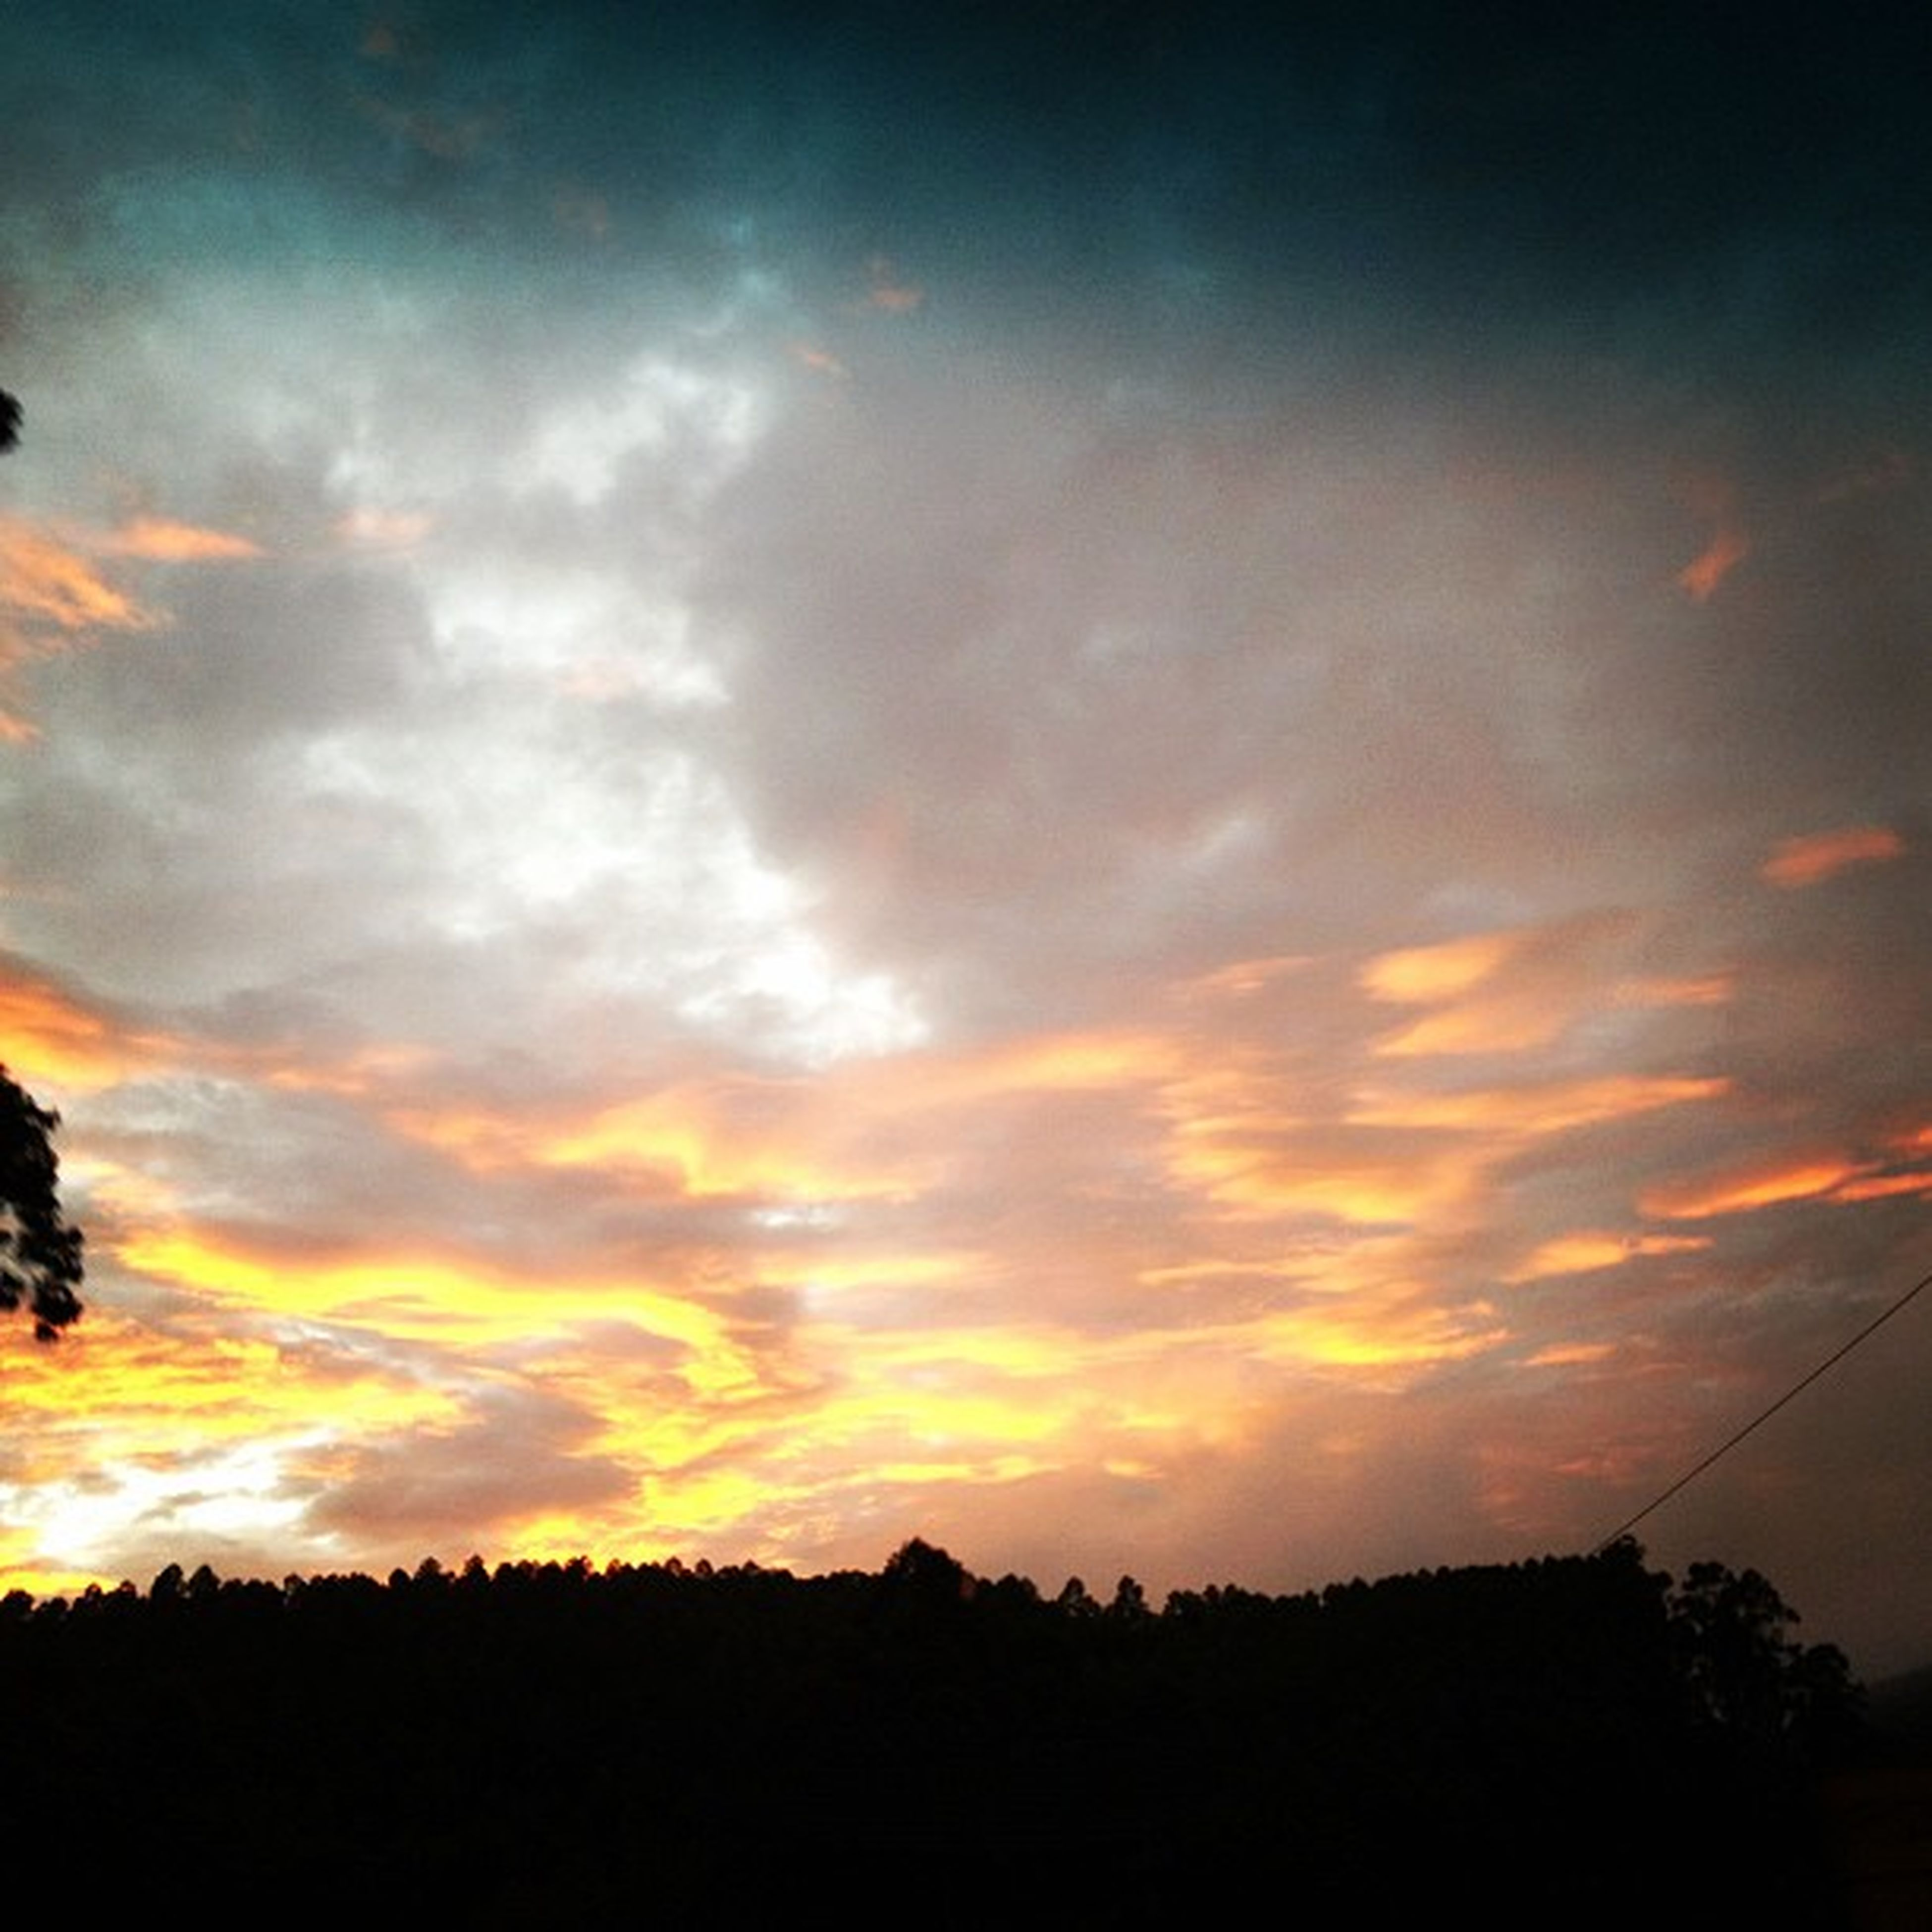 sunset, silhouette, sky, tranquil scene, scenics, tranquility, beauty in nature, landscape, orange color, cloud - sky, nature, idyllic, cloud, dramatic sky, tree, field, moody sky, outdoors, no people, majestic